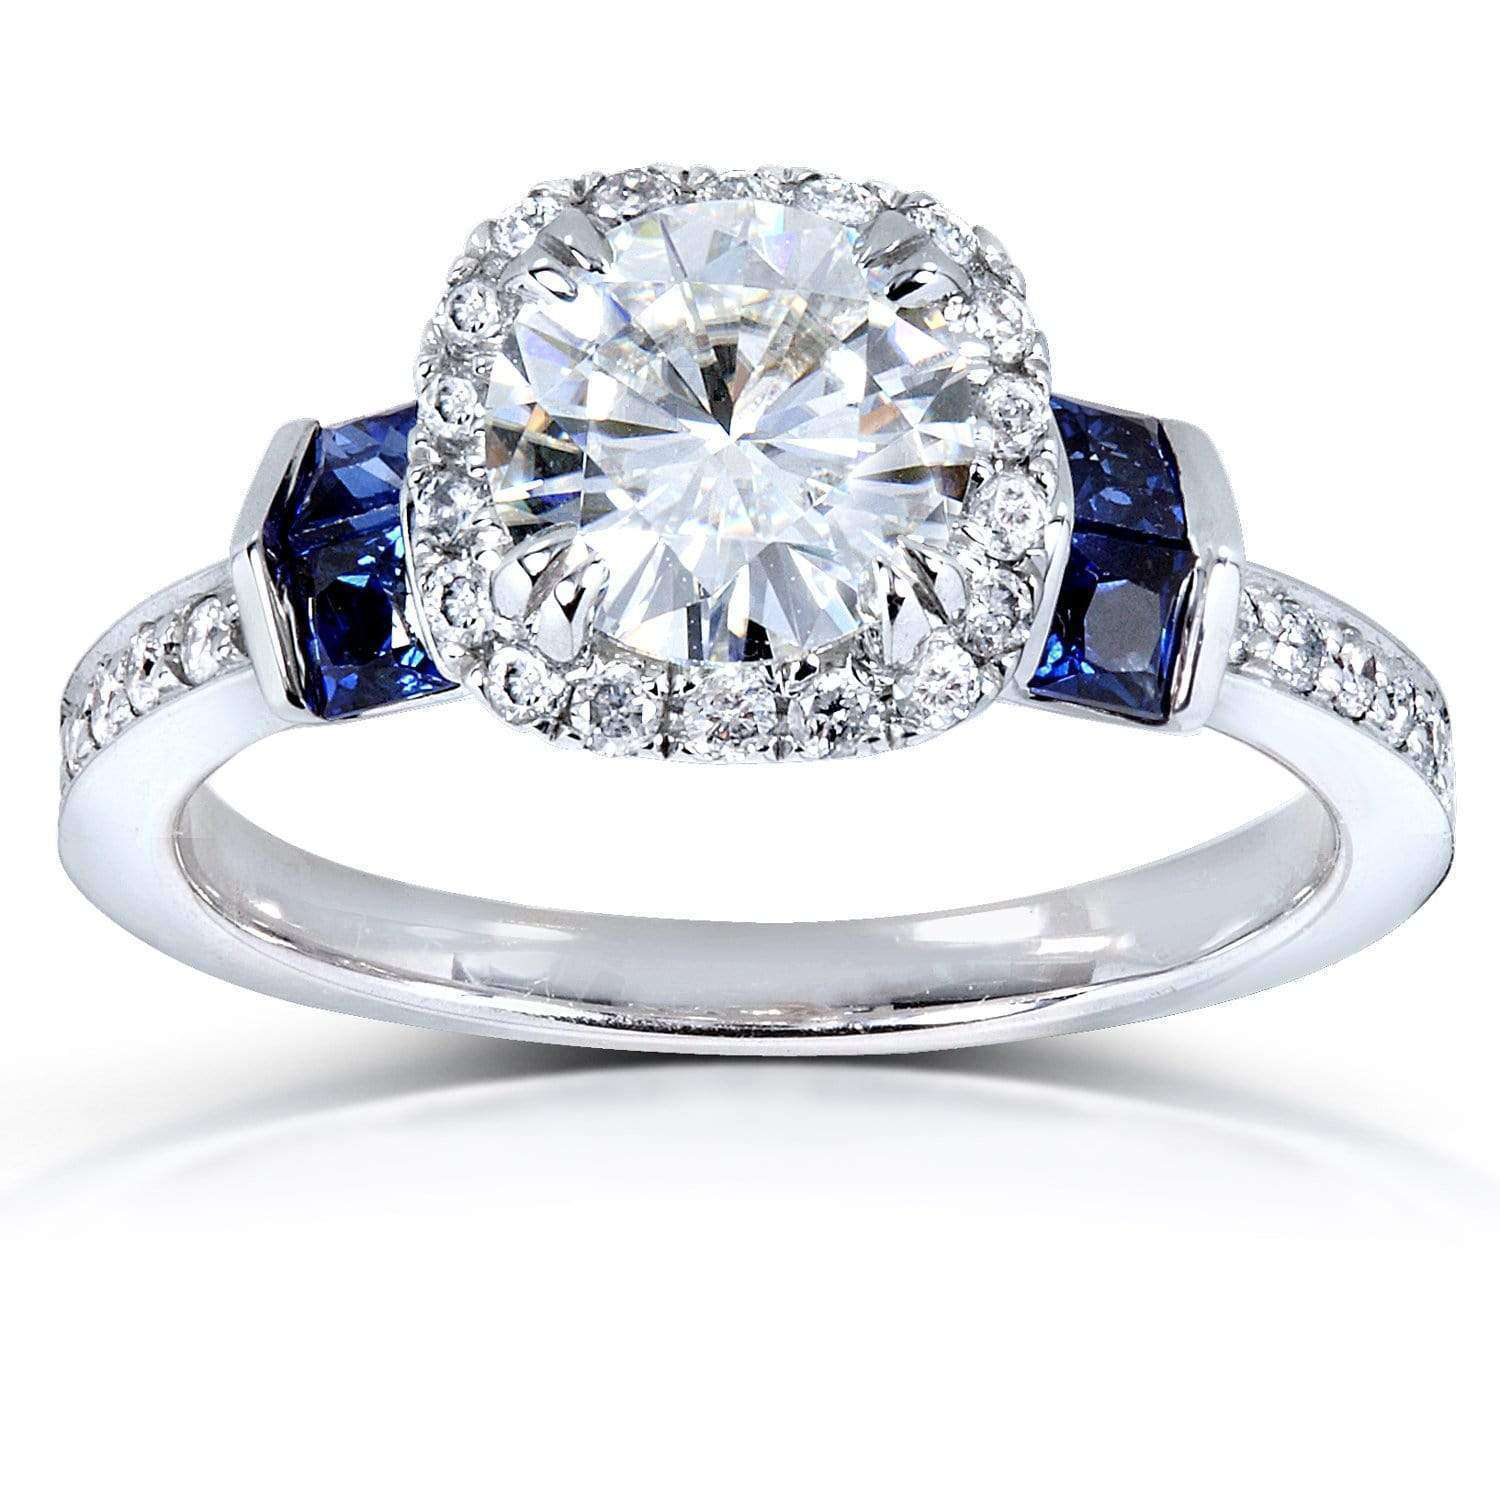 Coupons Round Moissanite Engagement Ring with Diamond and Sapphire 1 3/5 CTW Platinum - 7.5